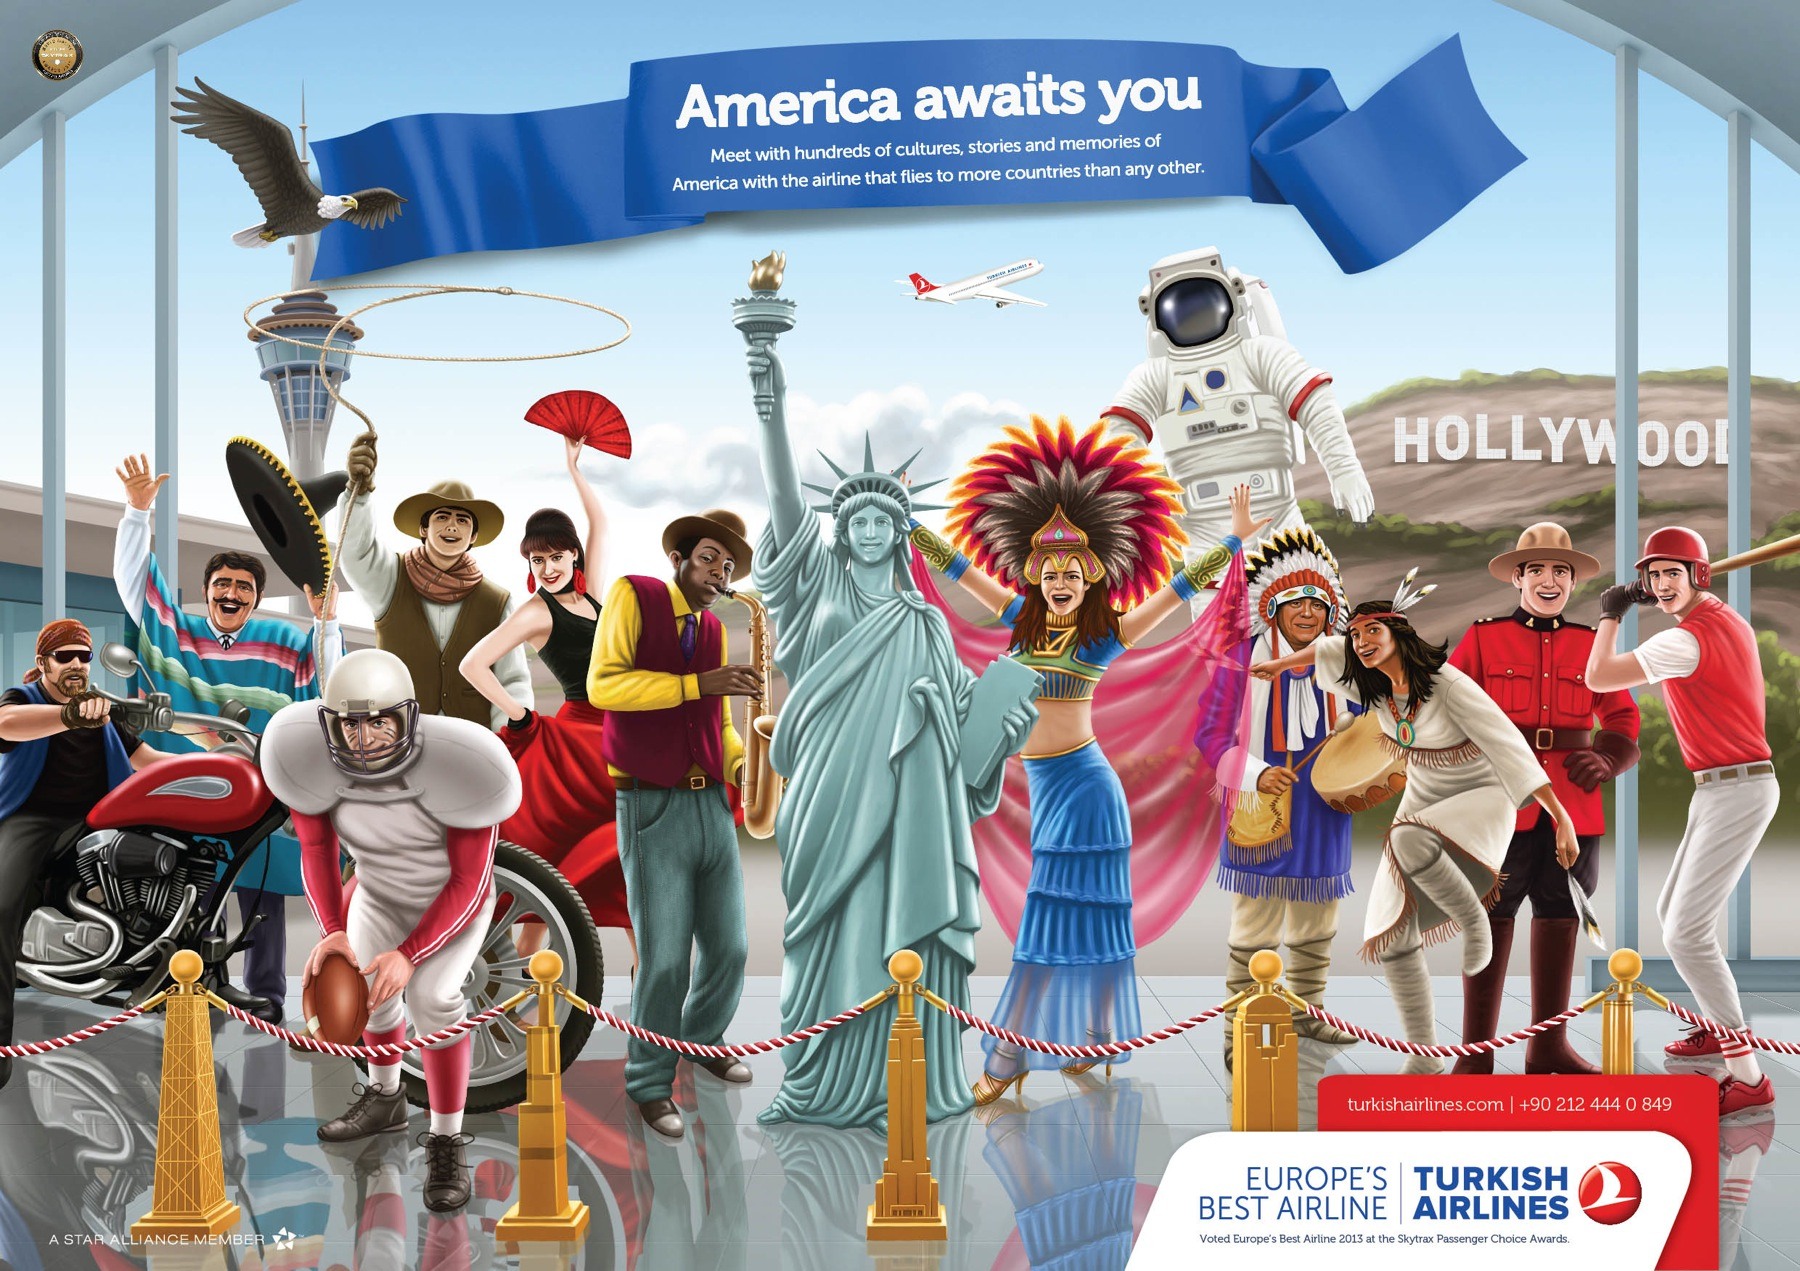 Turkish Airlines_commercial_america awaits you_2013